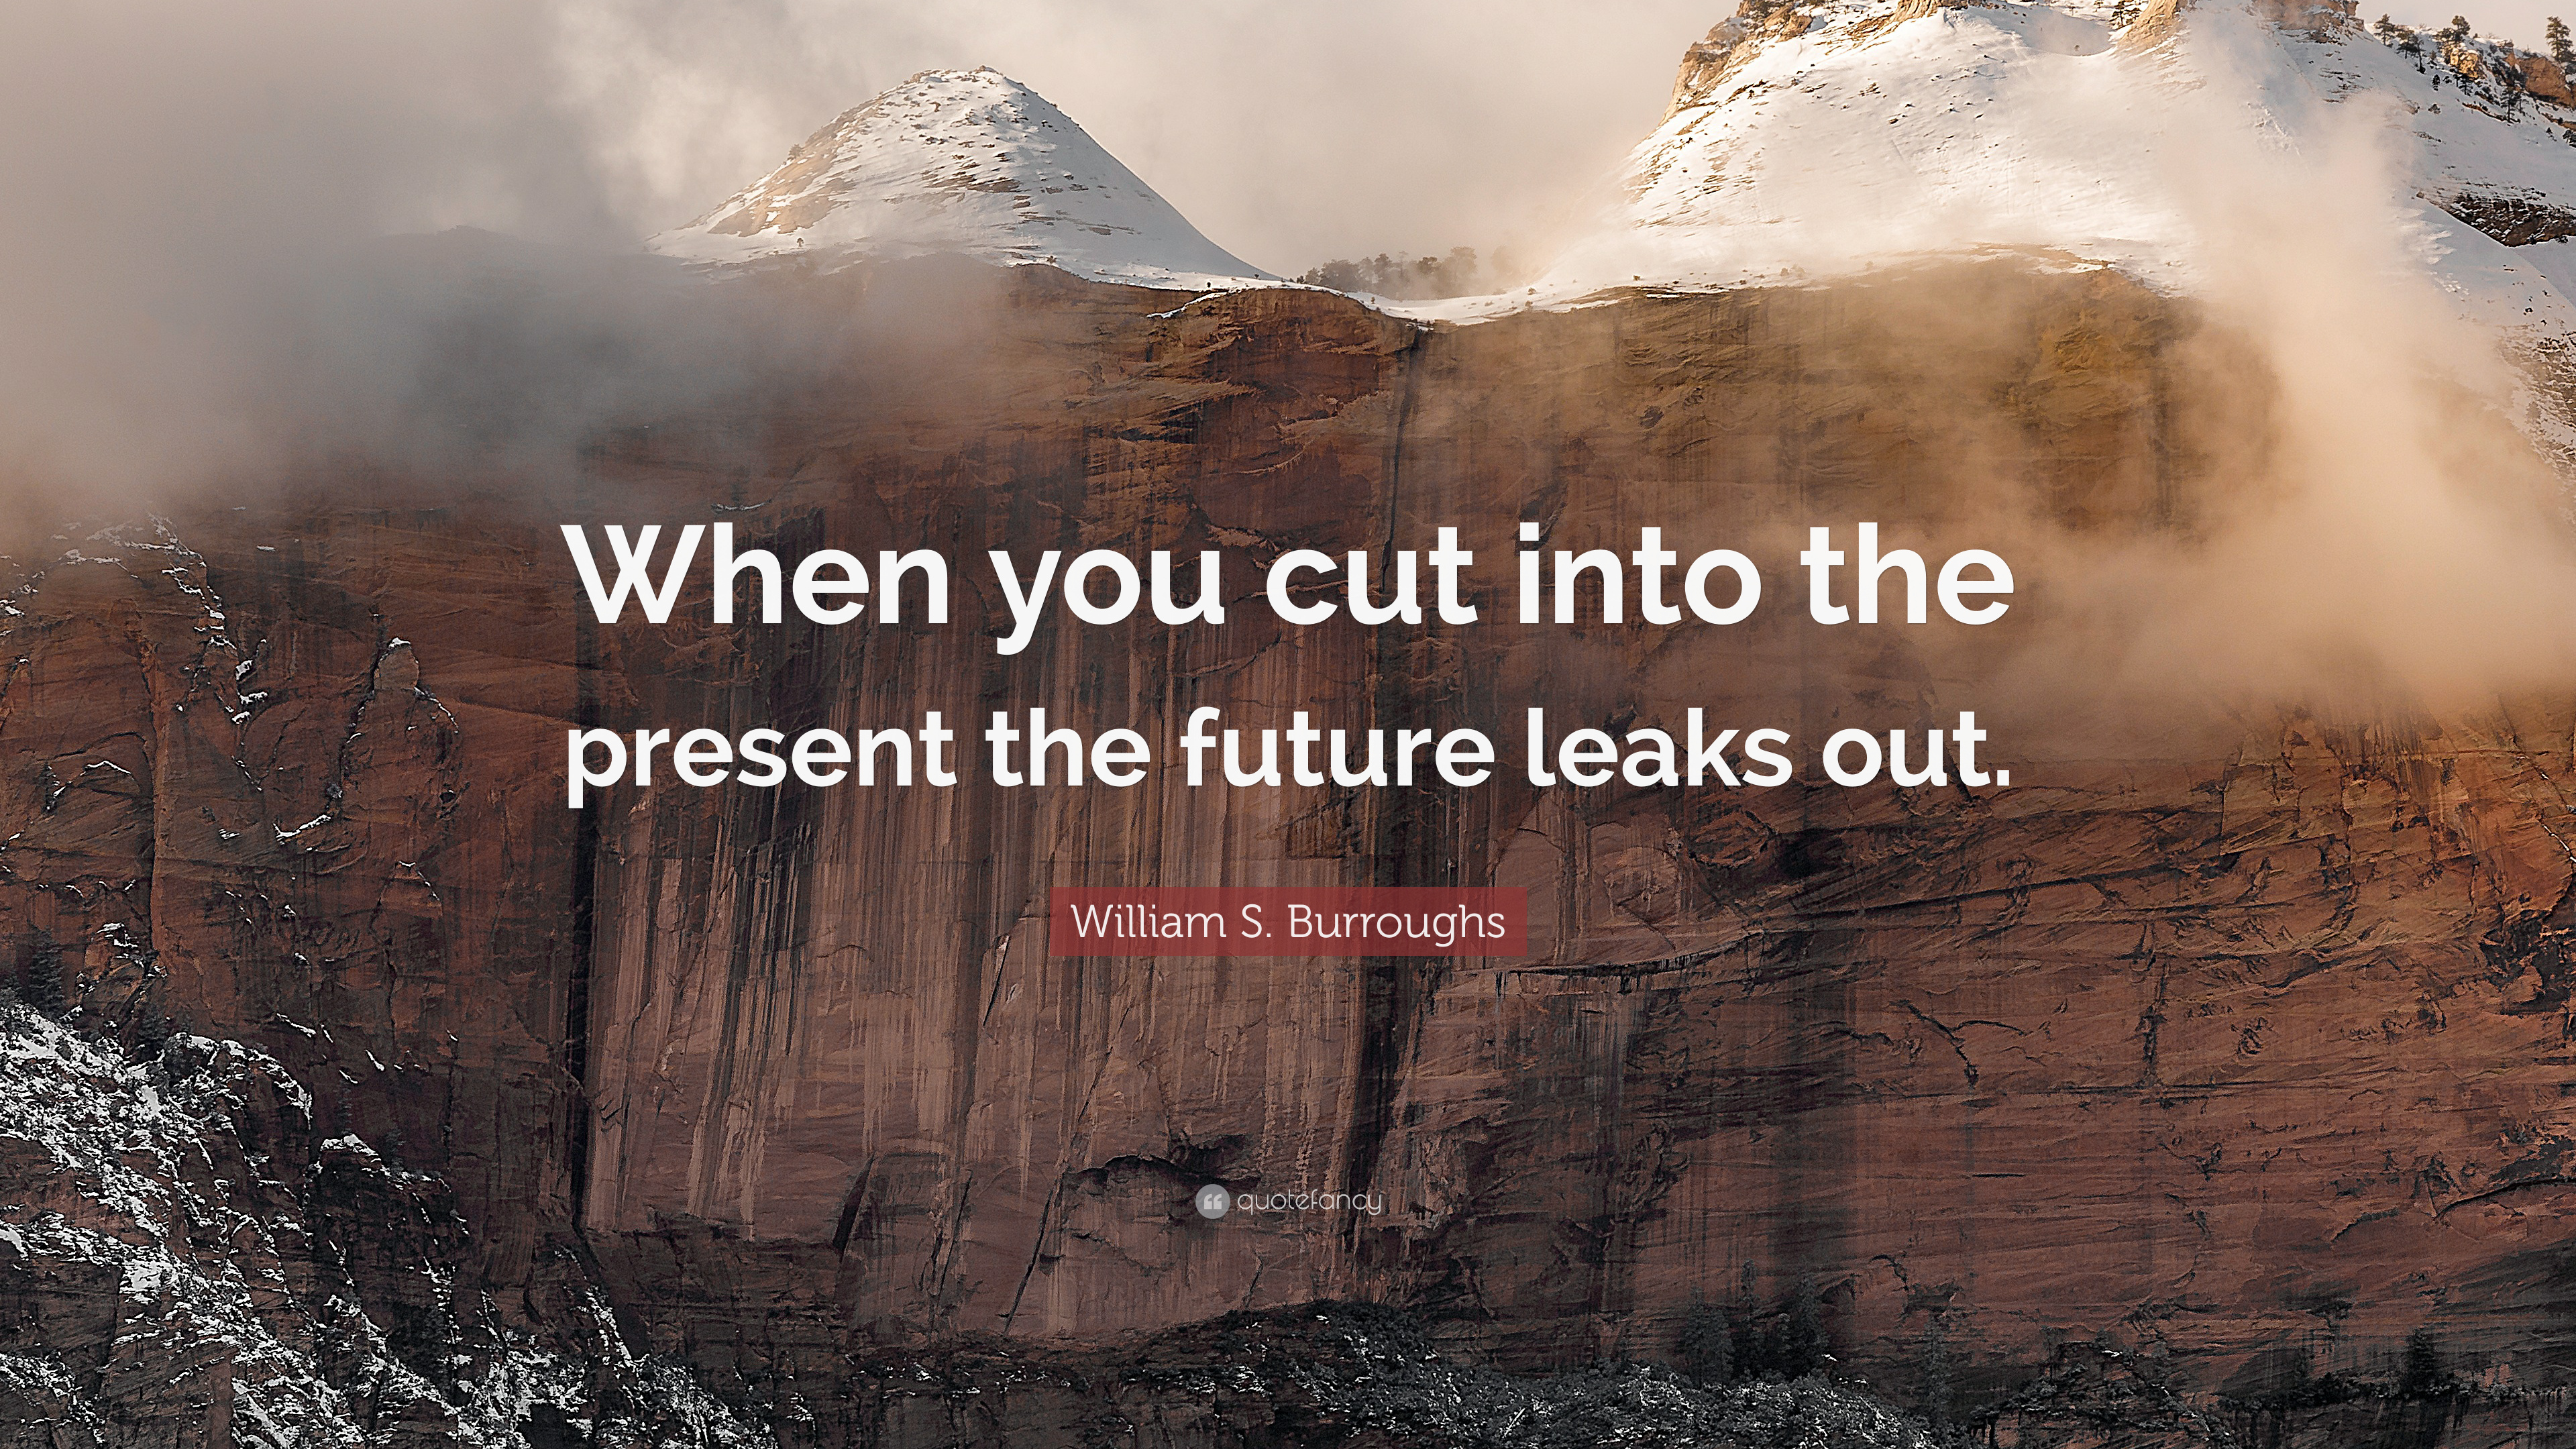 William S Burroughs Quote When You Cut Into The Present The